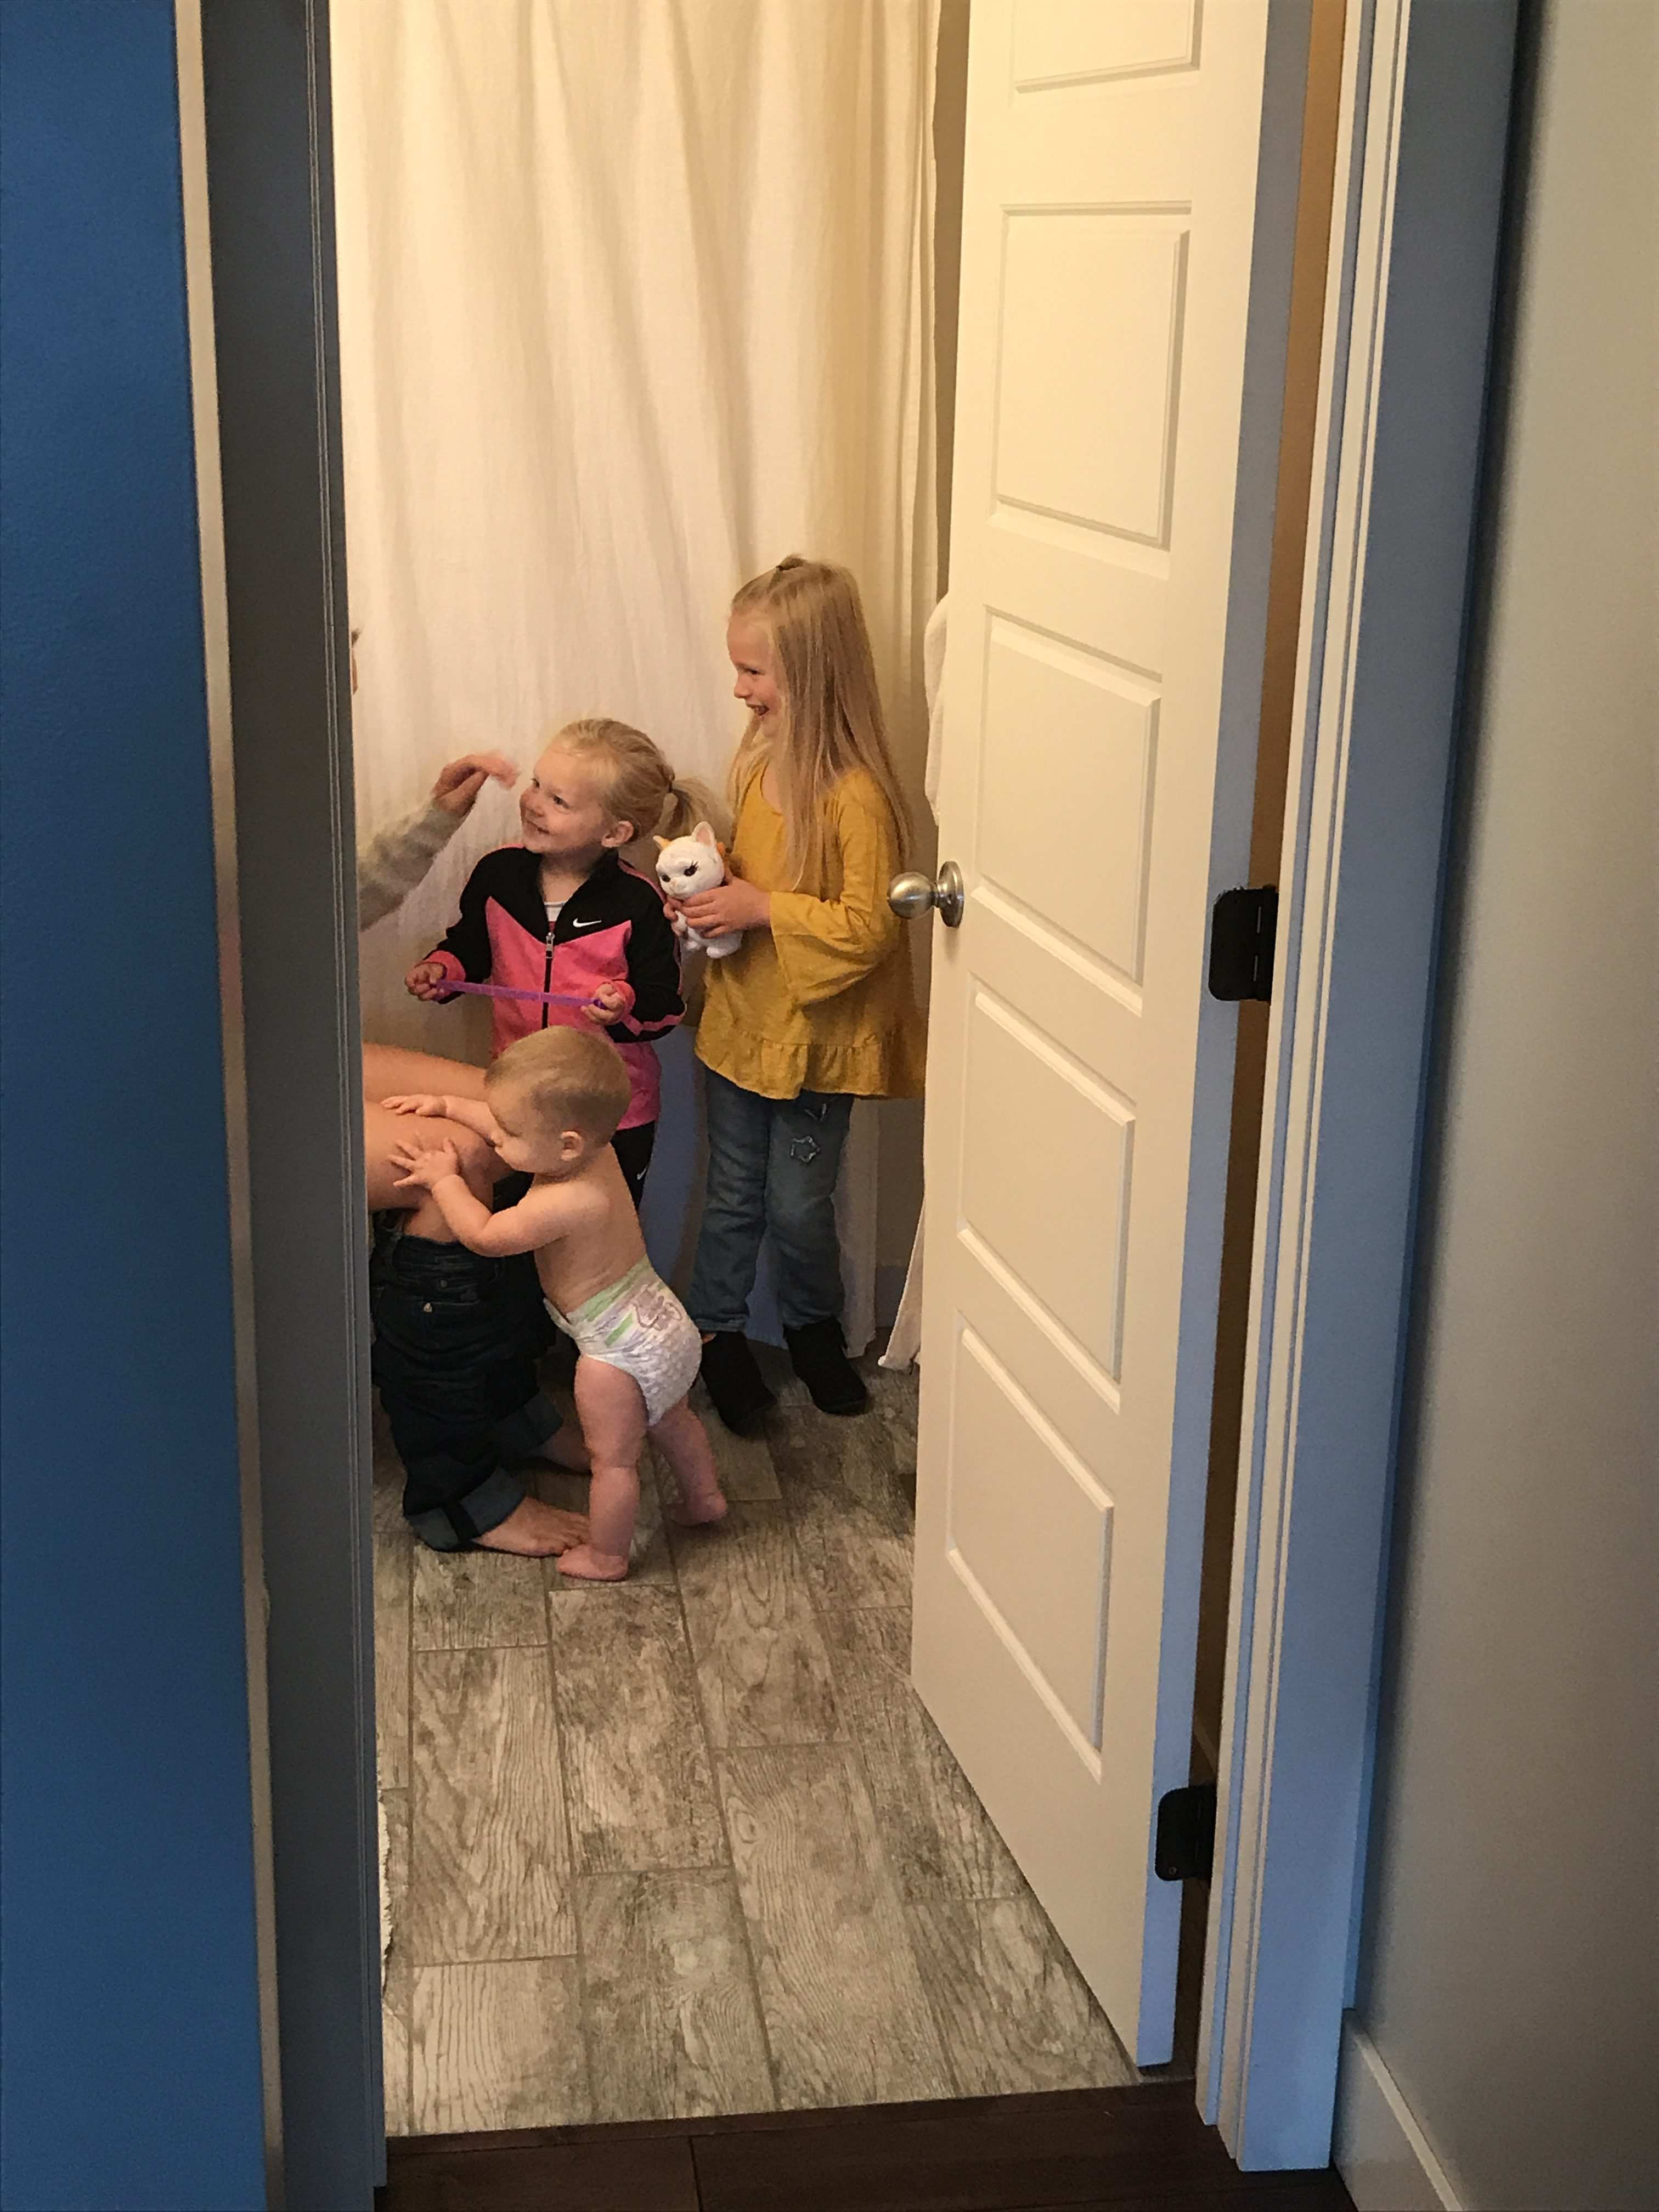 Pooping Alone, and Other Things Moms Aren't Allowed to do Without an Audience www.herviewfromhome.com